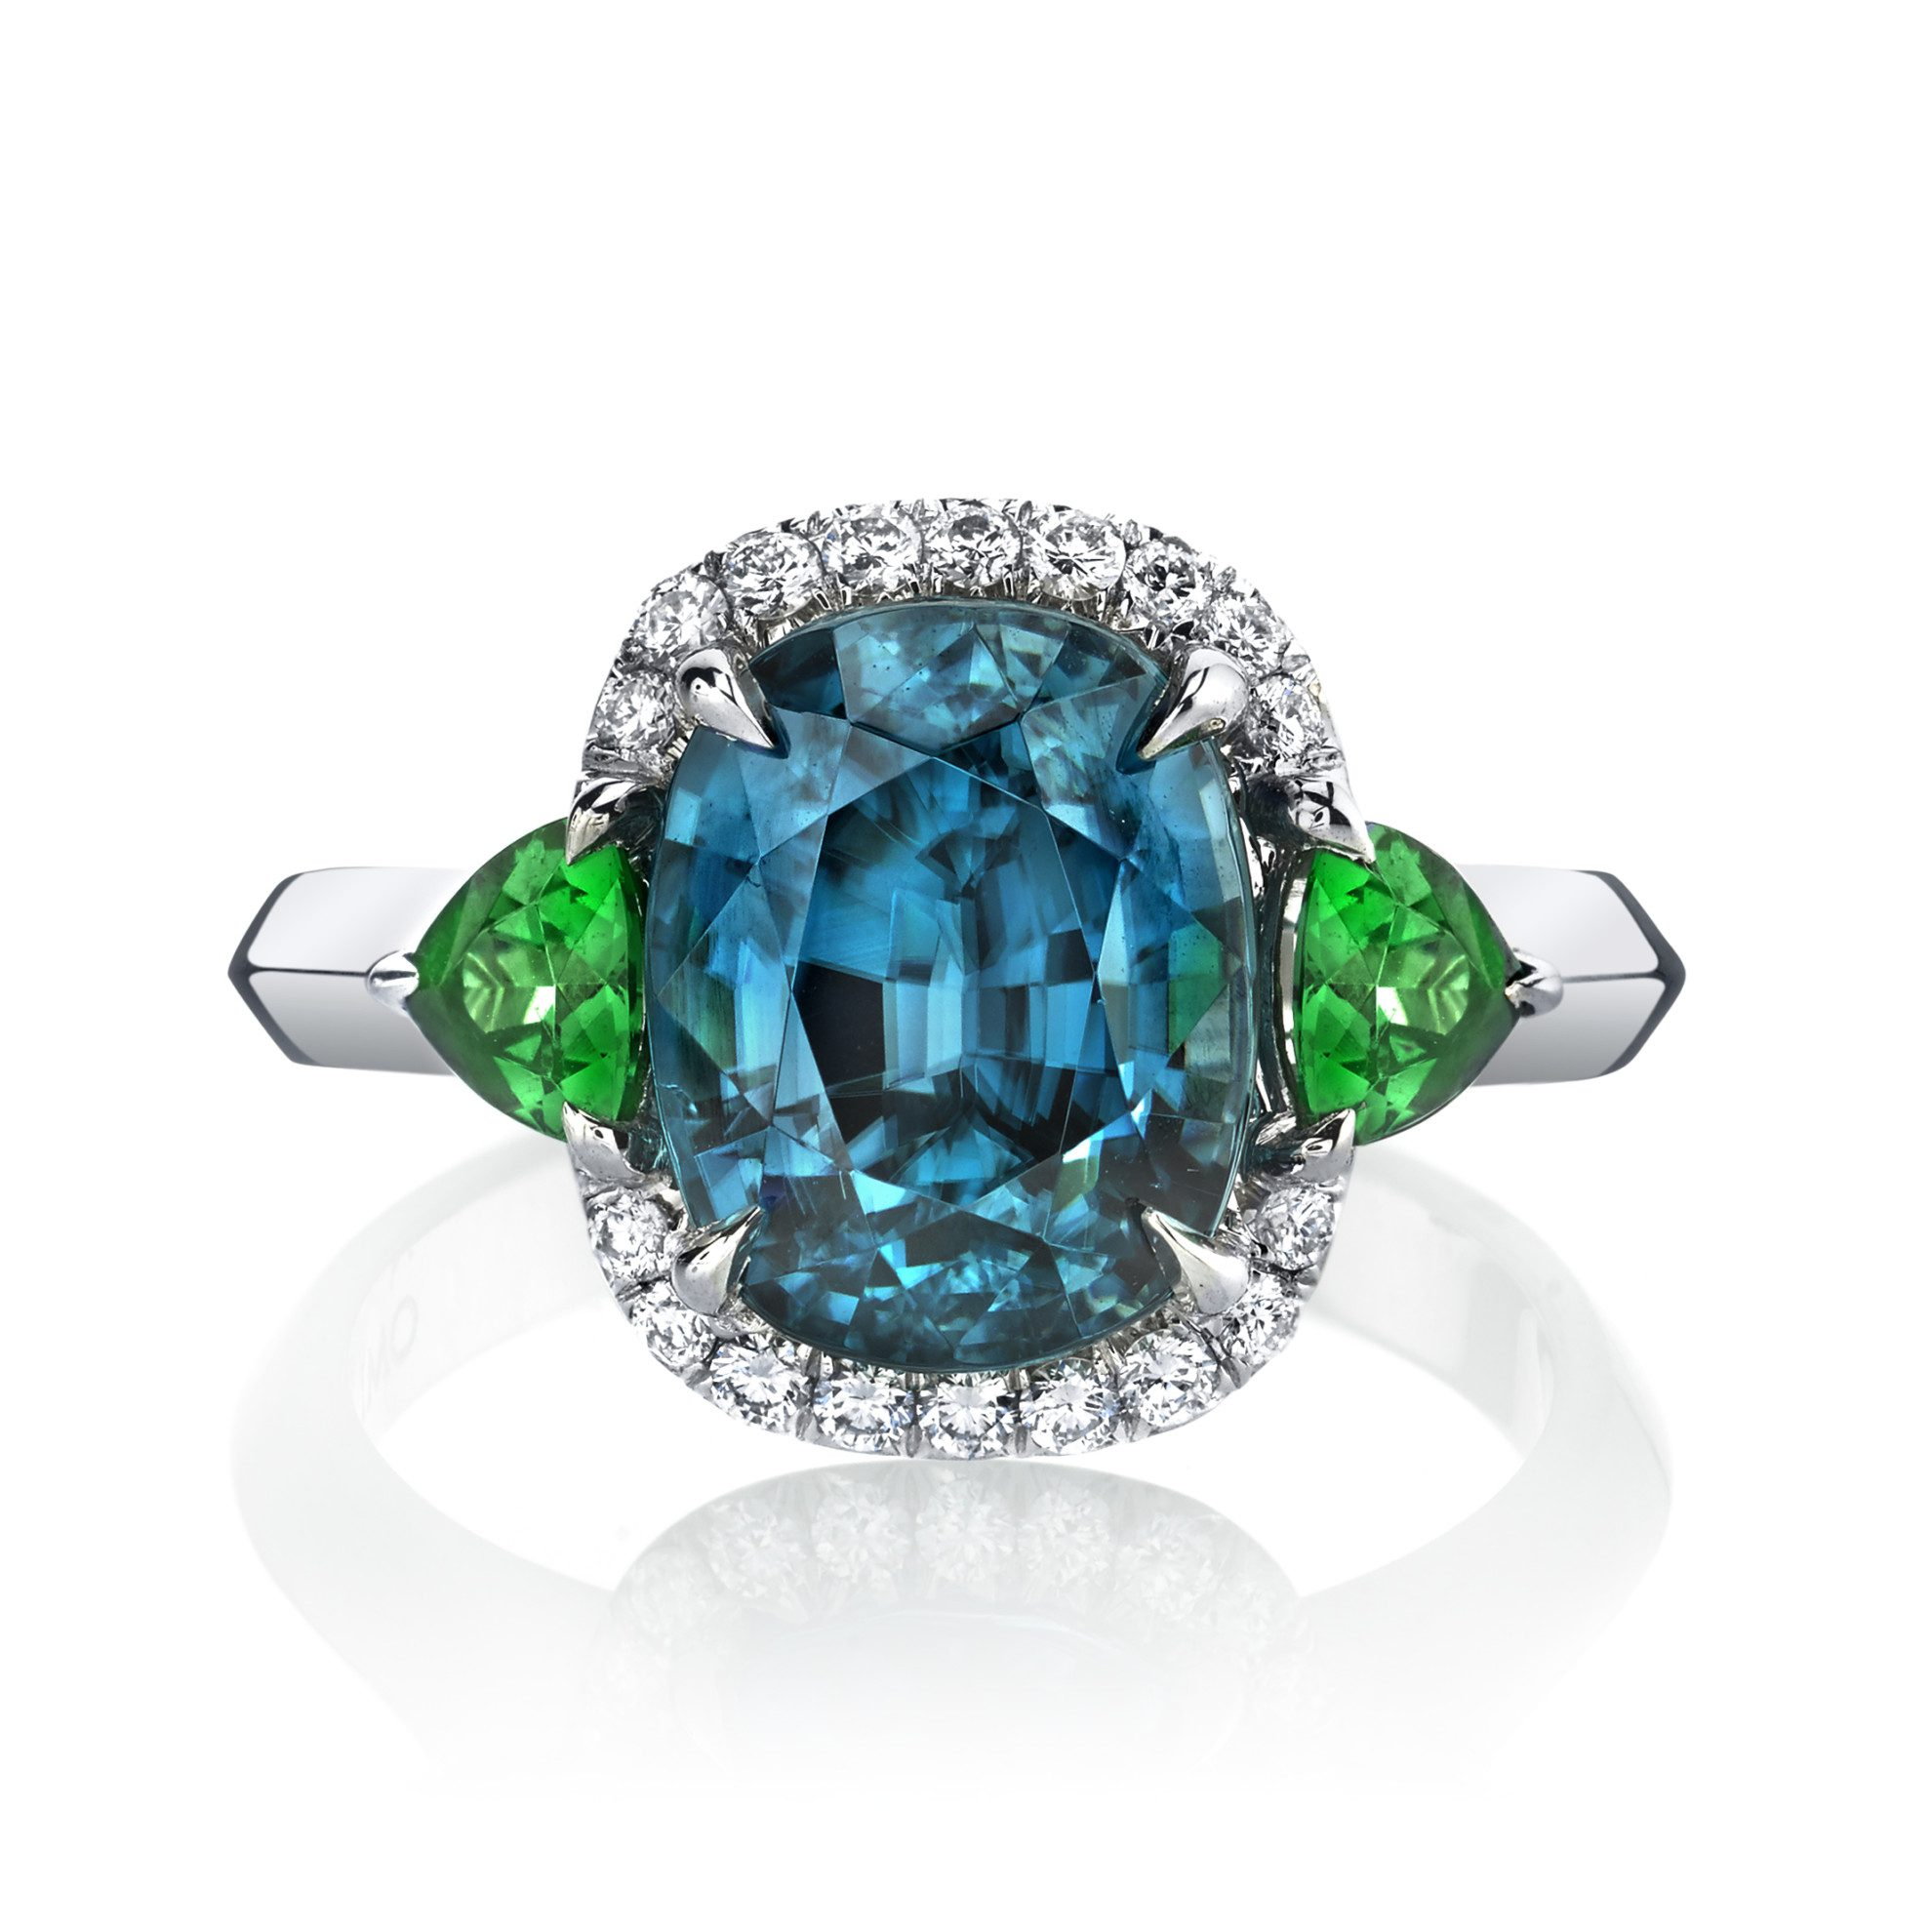 tourmaline ring gold at j for jewelry org id certified r green rings gia blue sale gem cocktail diamond